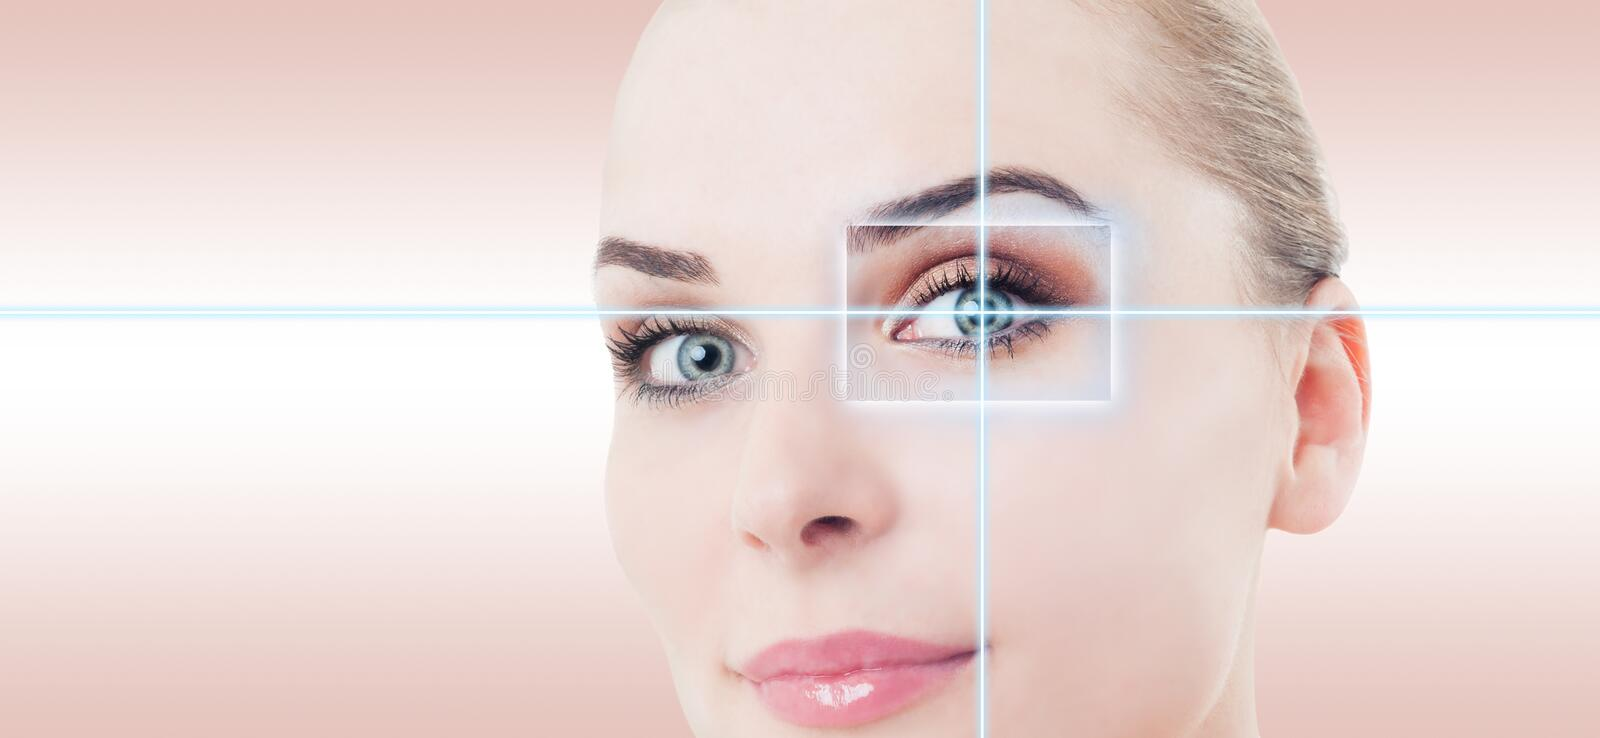 Woman futuristic eye with laser high-tech identification. As medicine and vision concept against pink or purple background stock photos